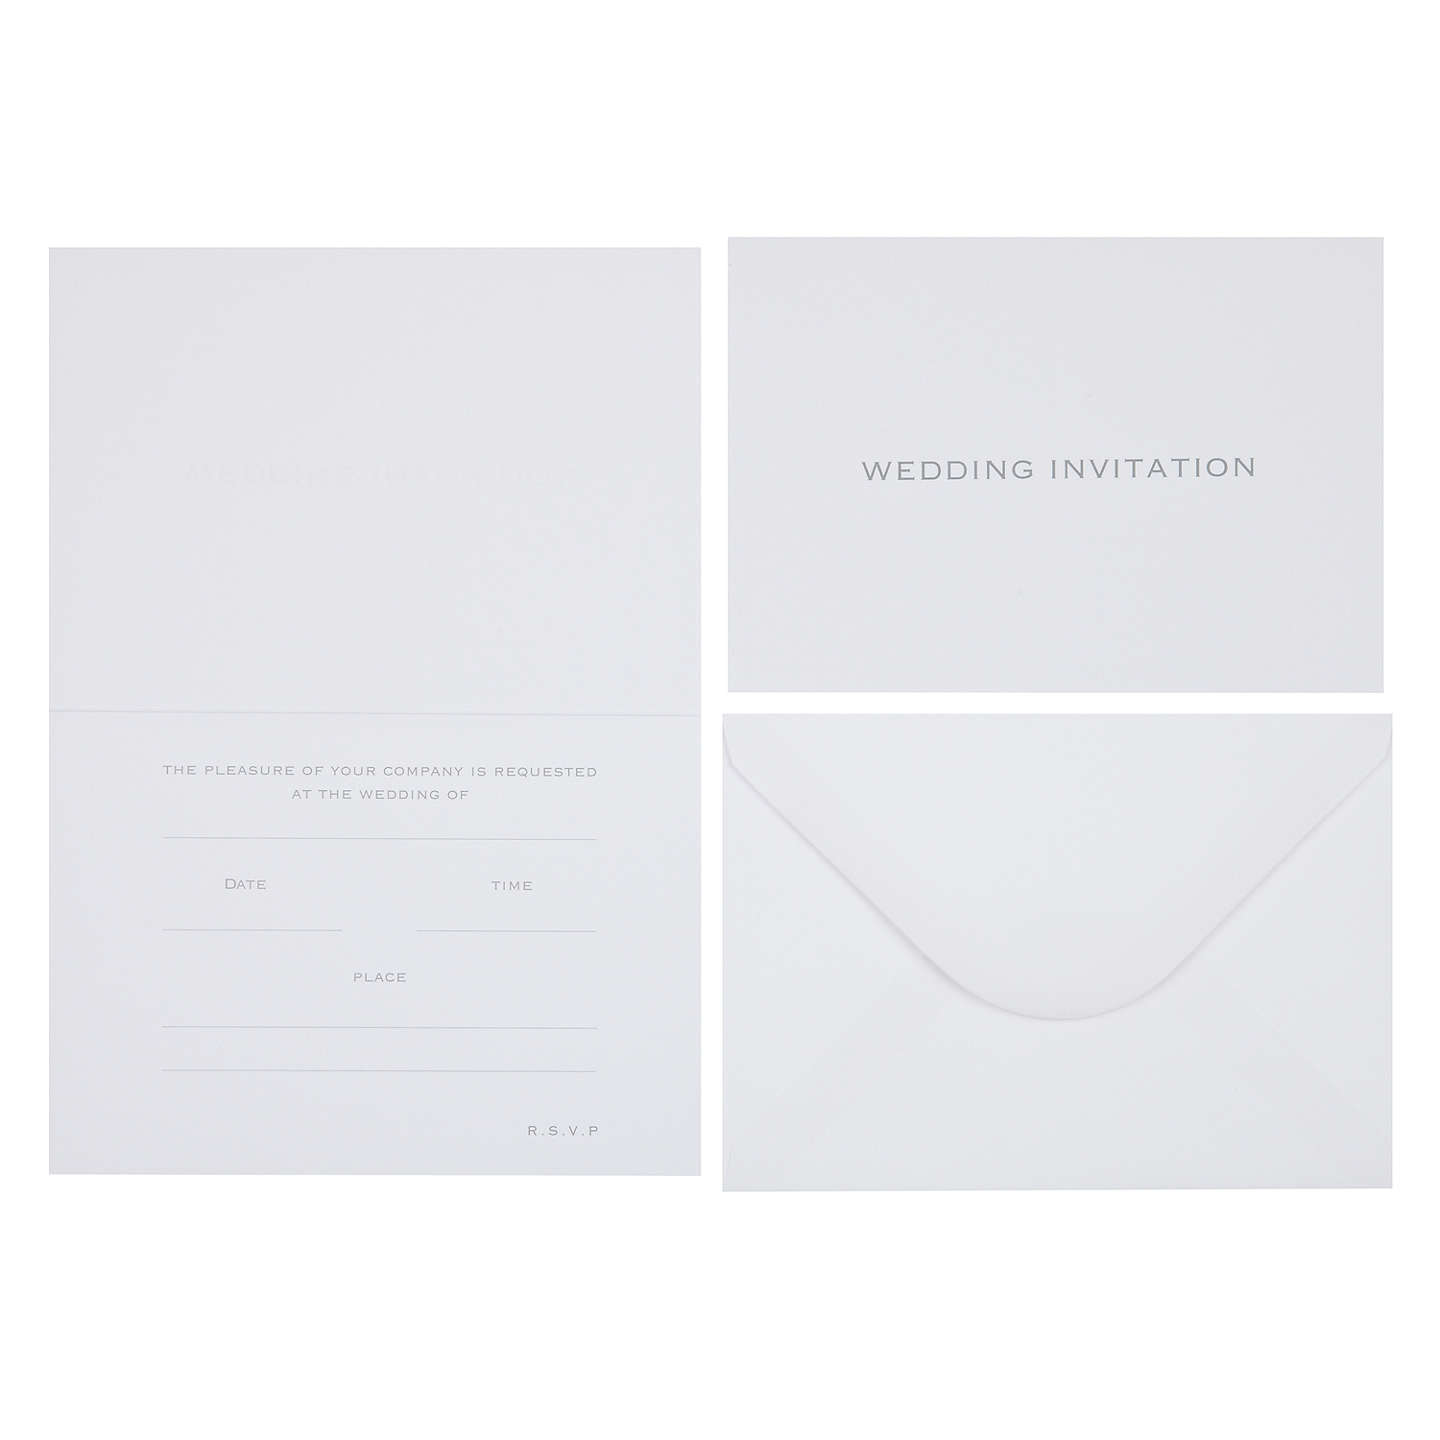 John lewis wedding invitation cards pack of 6 at john lewis buyjohn lewis wedding invitation cards pack of 6 online at johnlewis stopboris Image collections